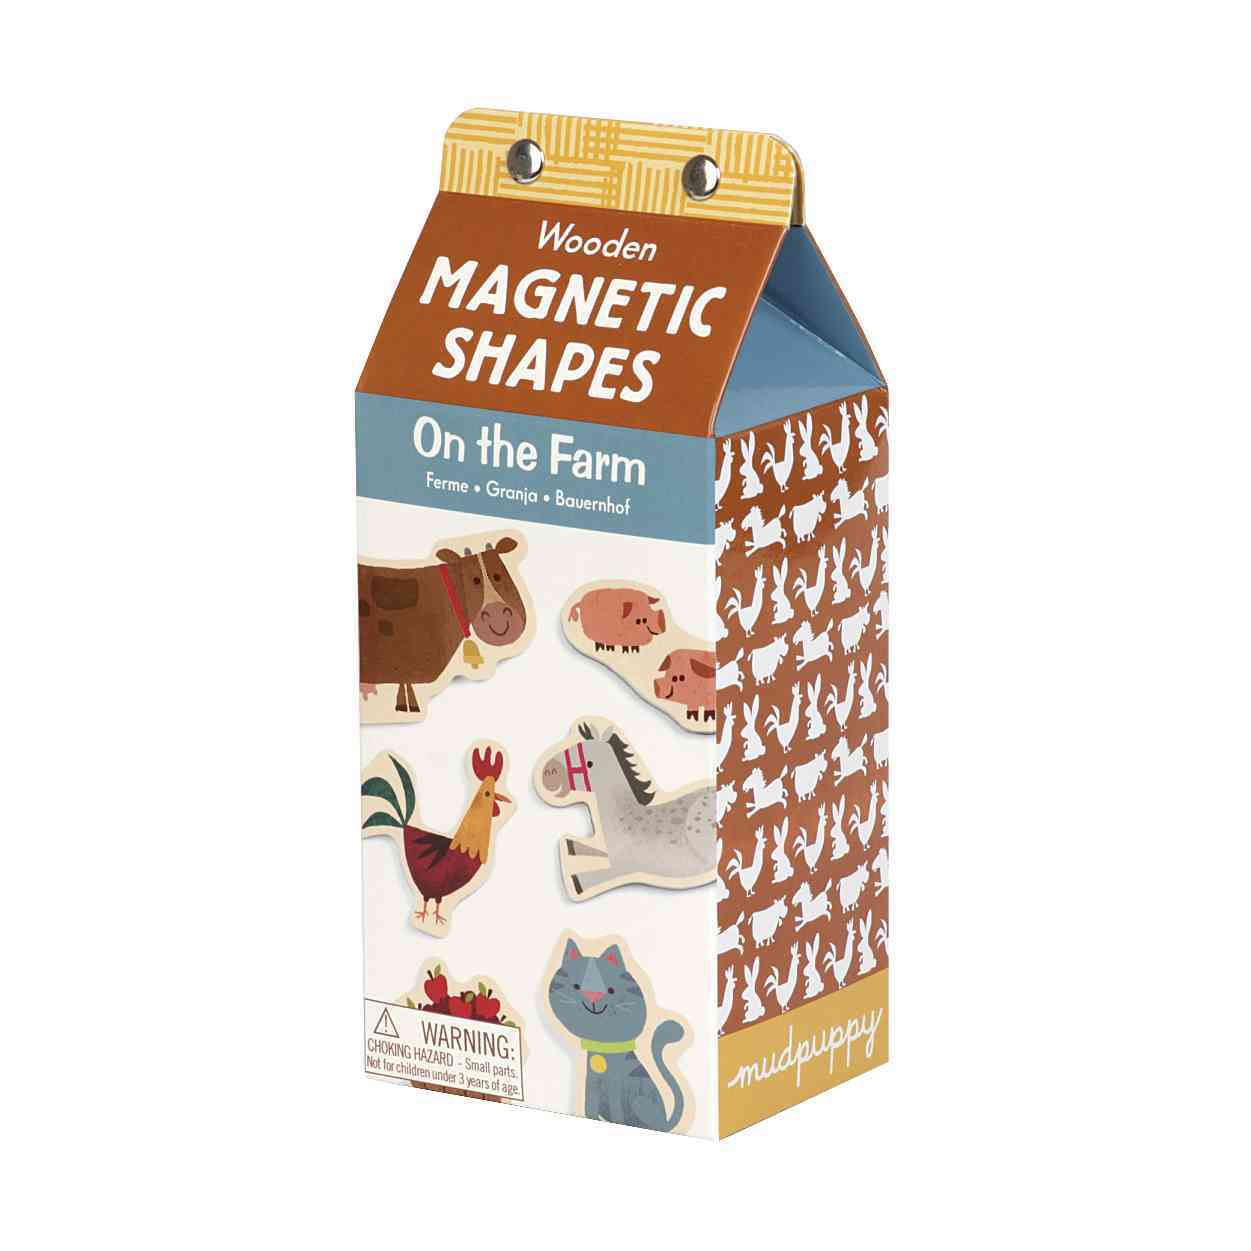 On the Farm Wooden Magnetic Shapes By Yanok, Johnny (ILT)